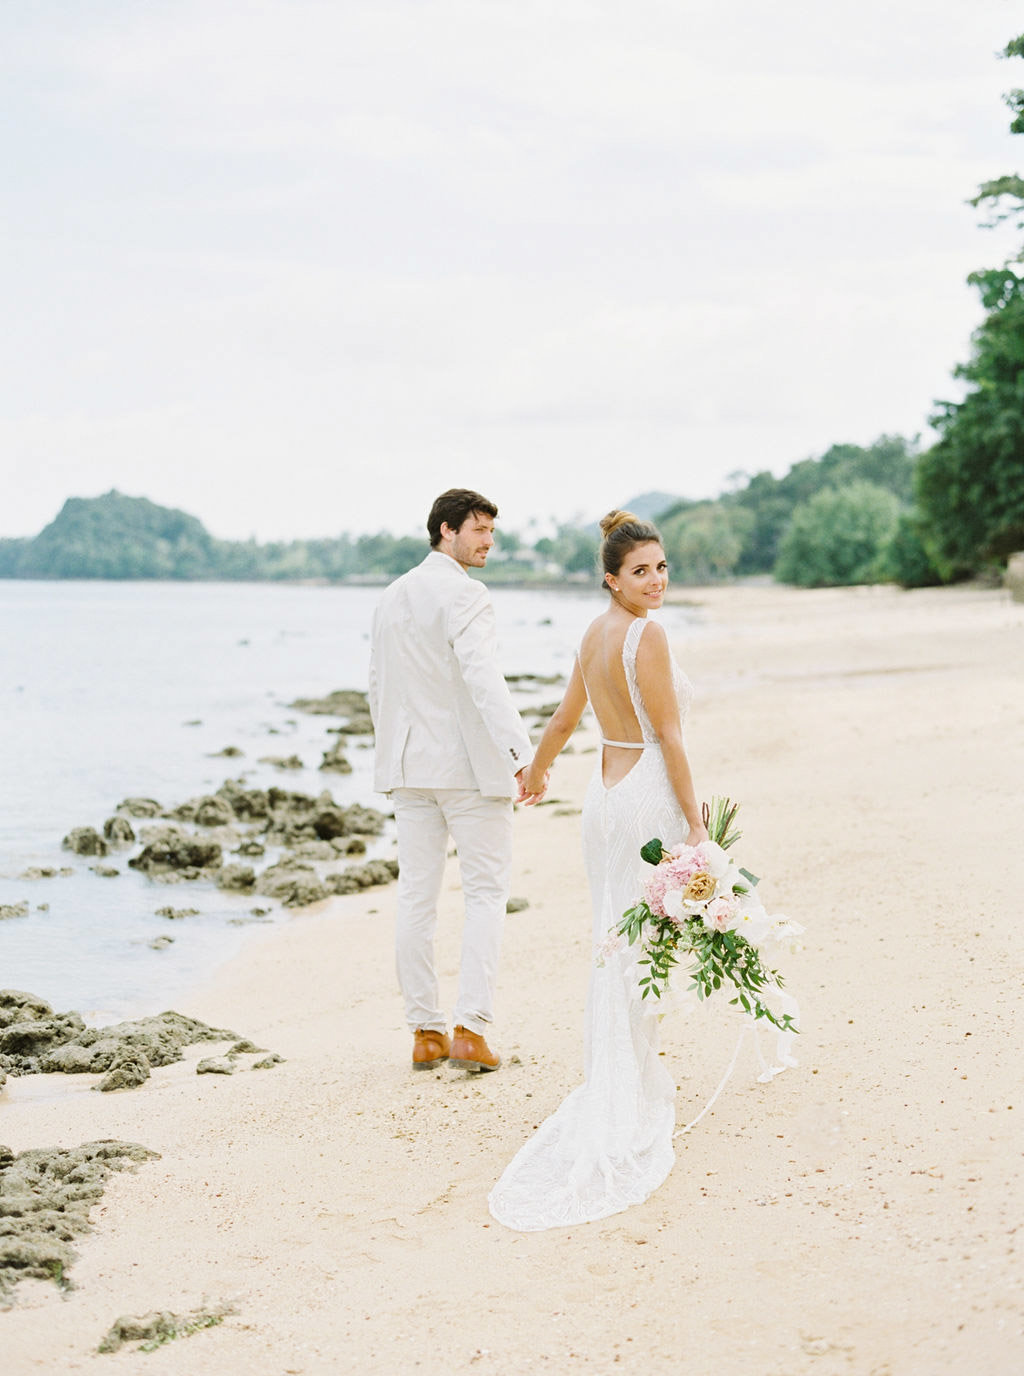 Thailand Wedding Venues Destination Koh Yao Noi By Fine Art Film Wedding Photographer Sheri McMahon-00041